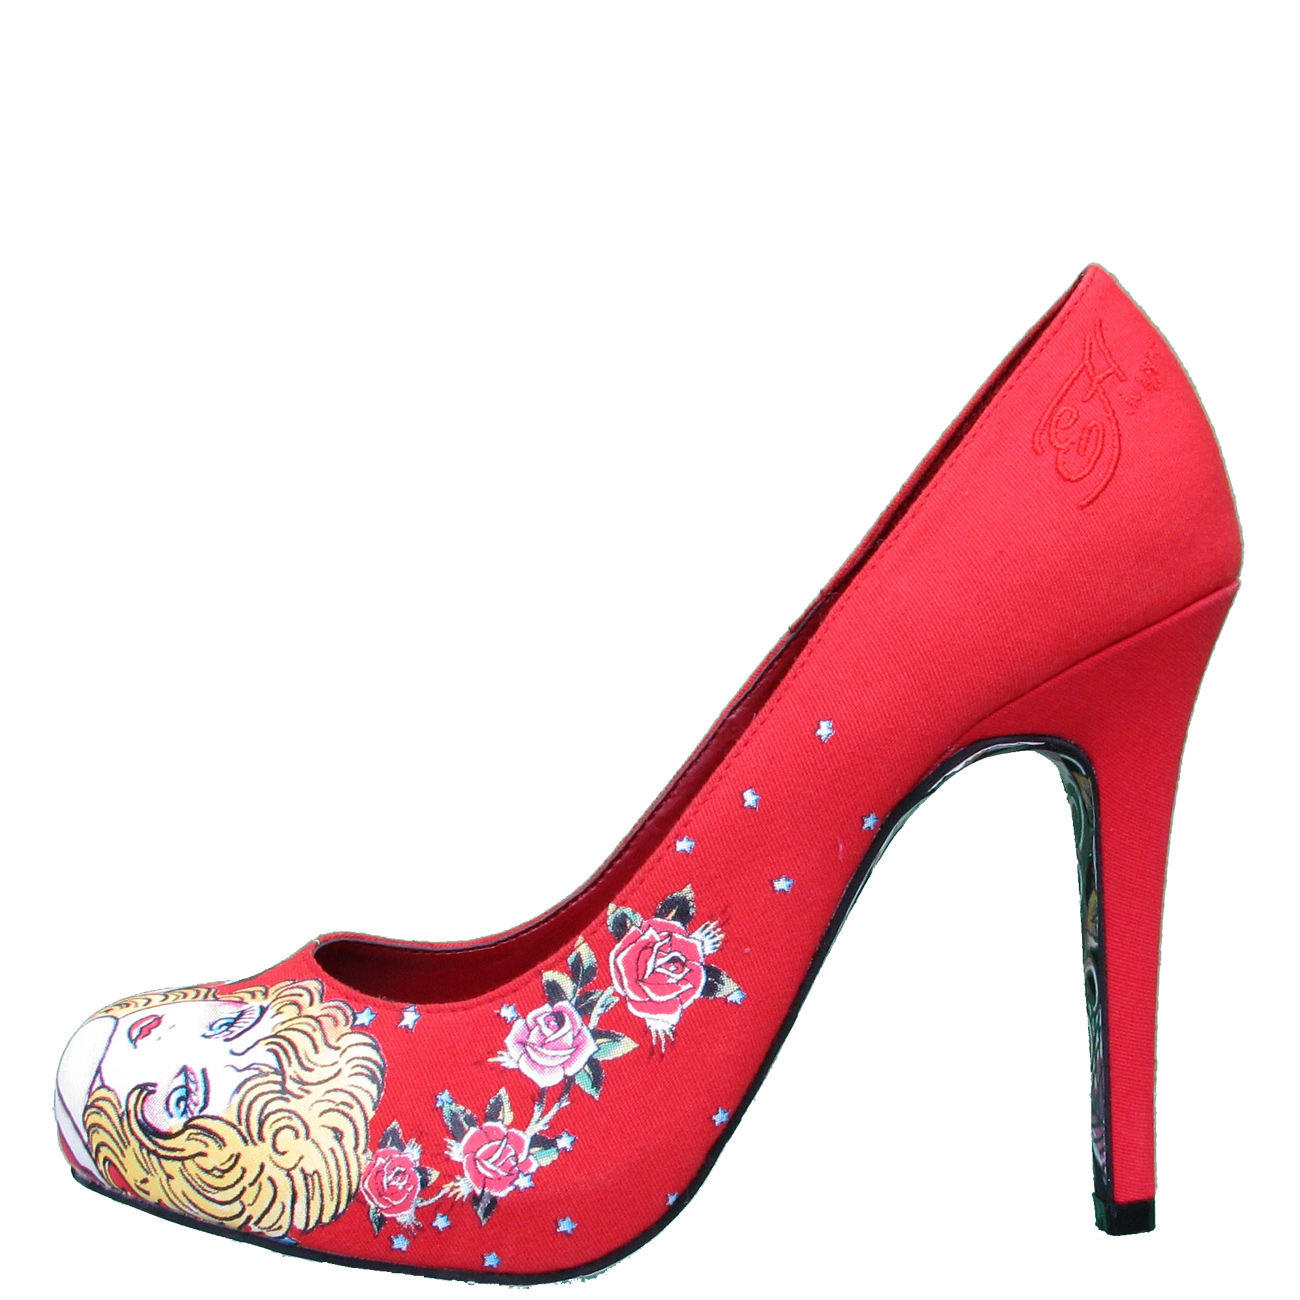 Ed Hardy Haute Pump Shoe for Women - Red